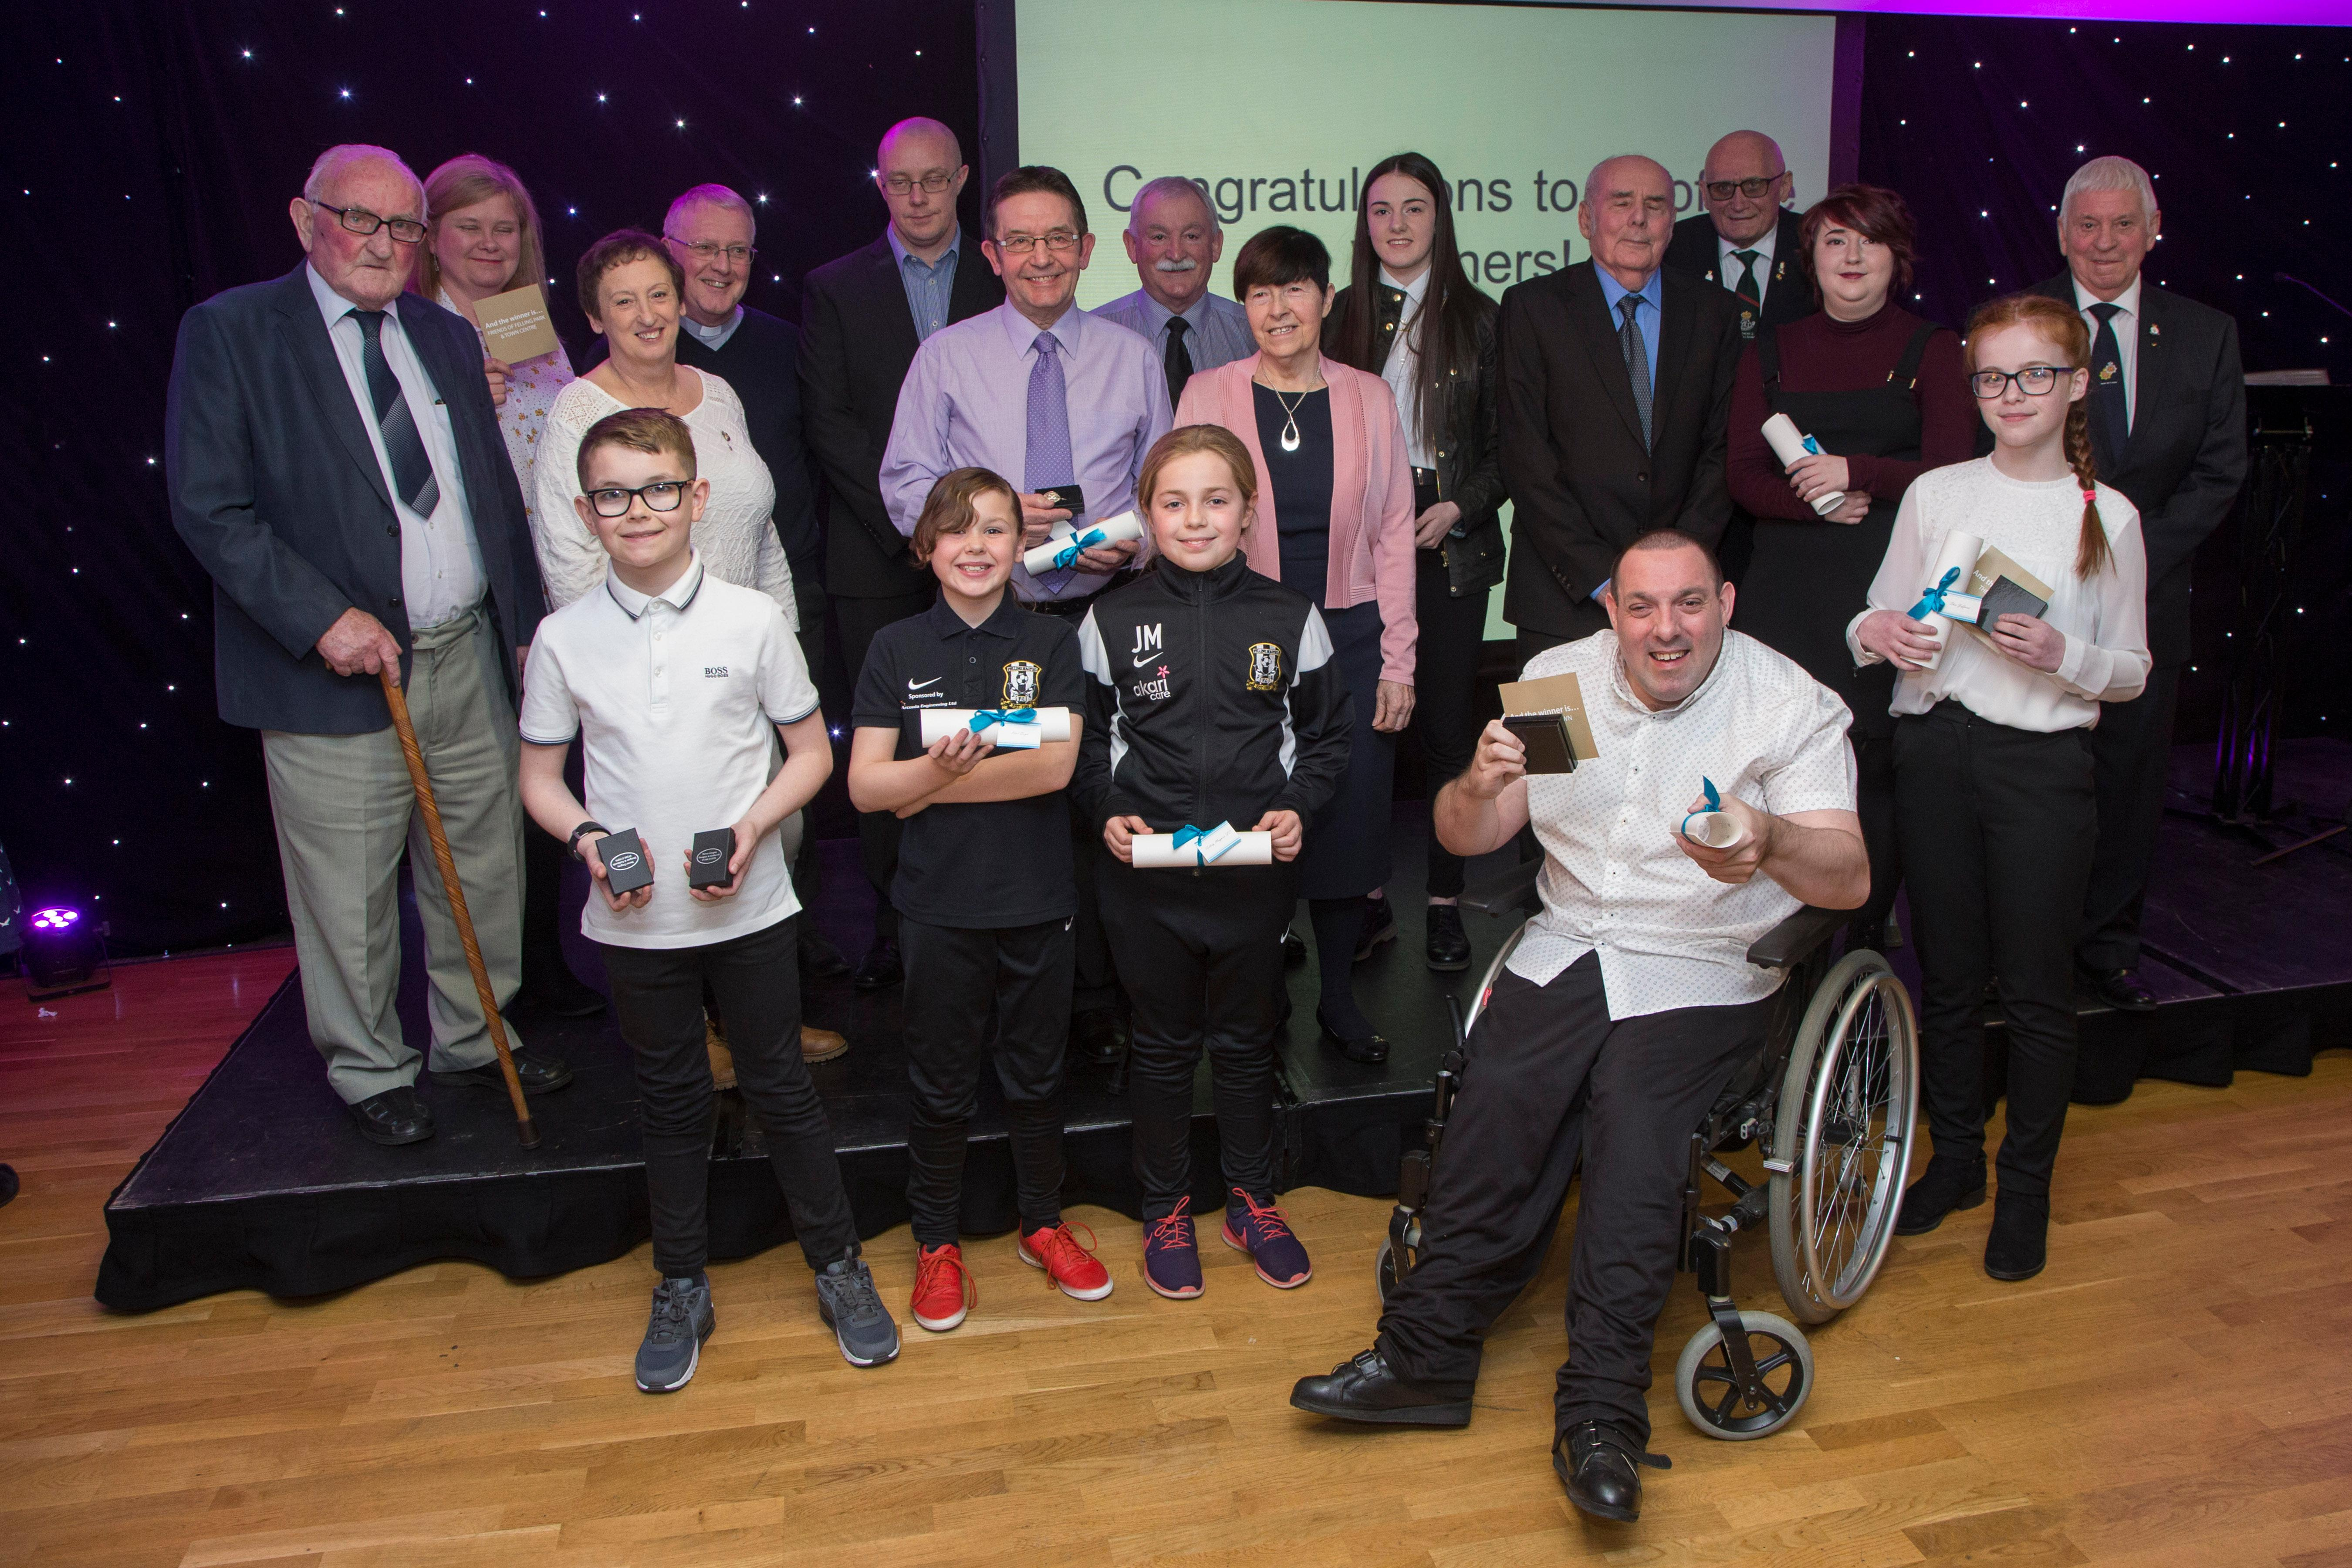 2018 Gateshead Awards winners